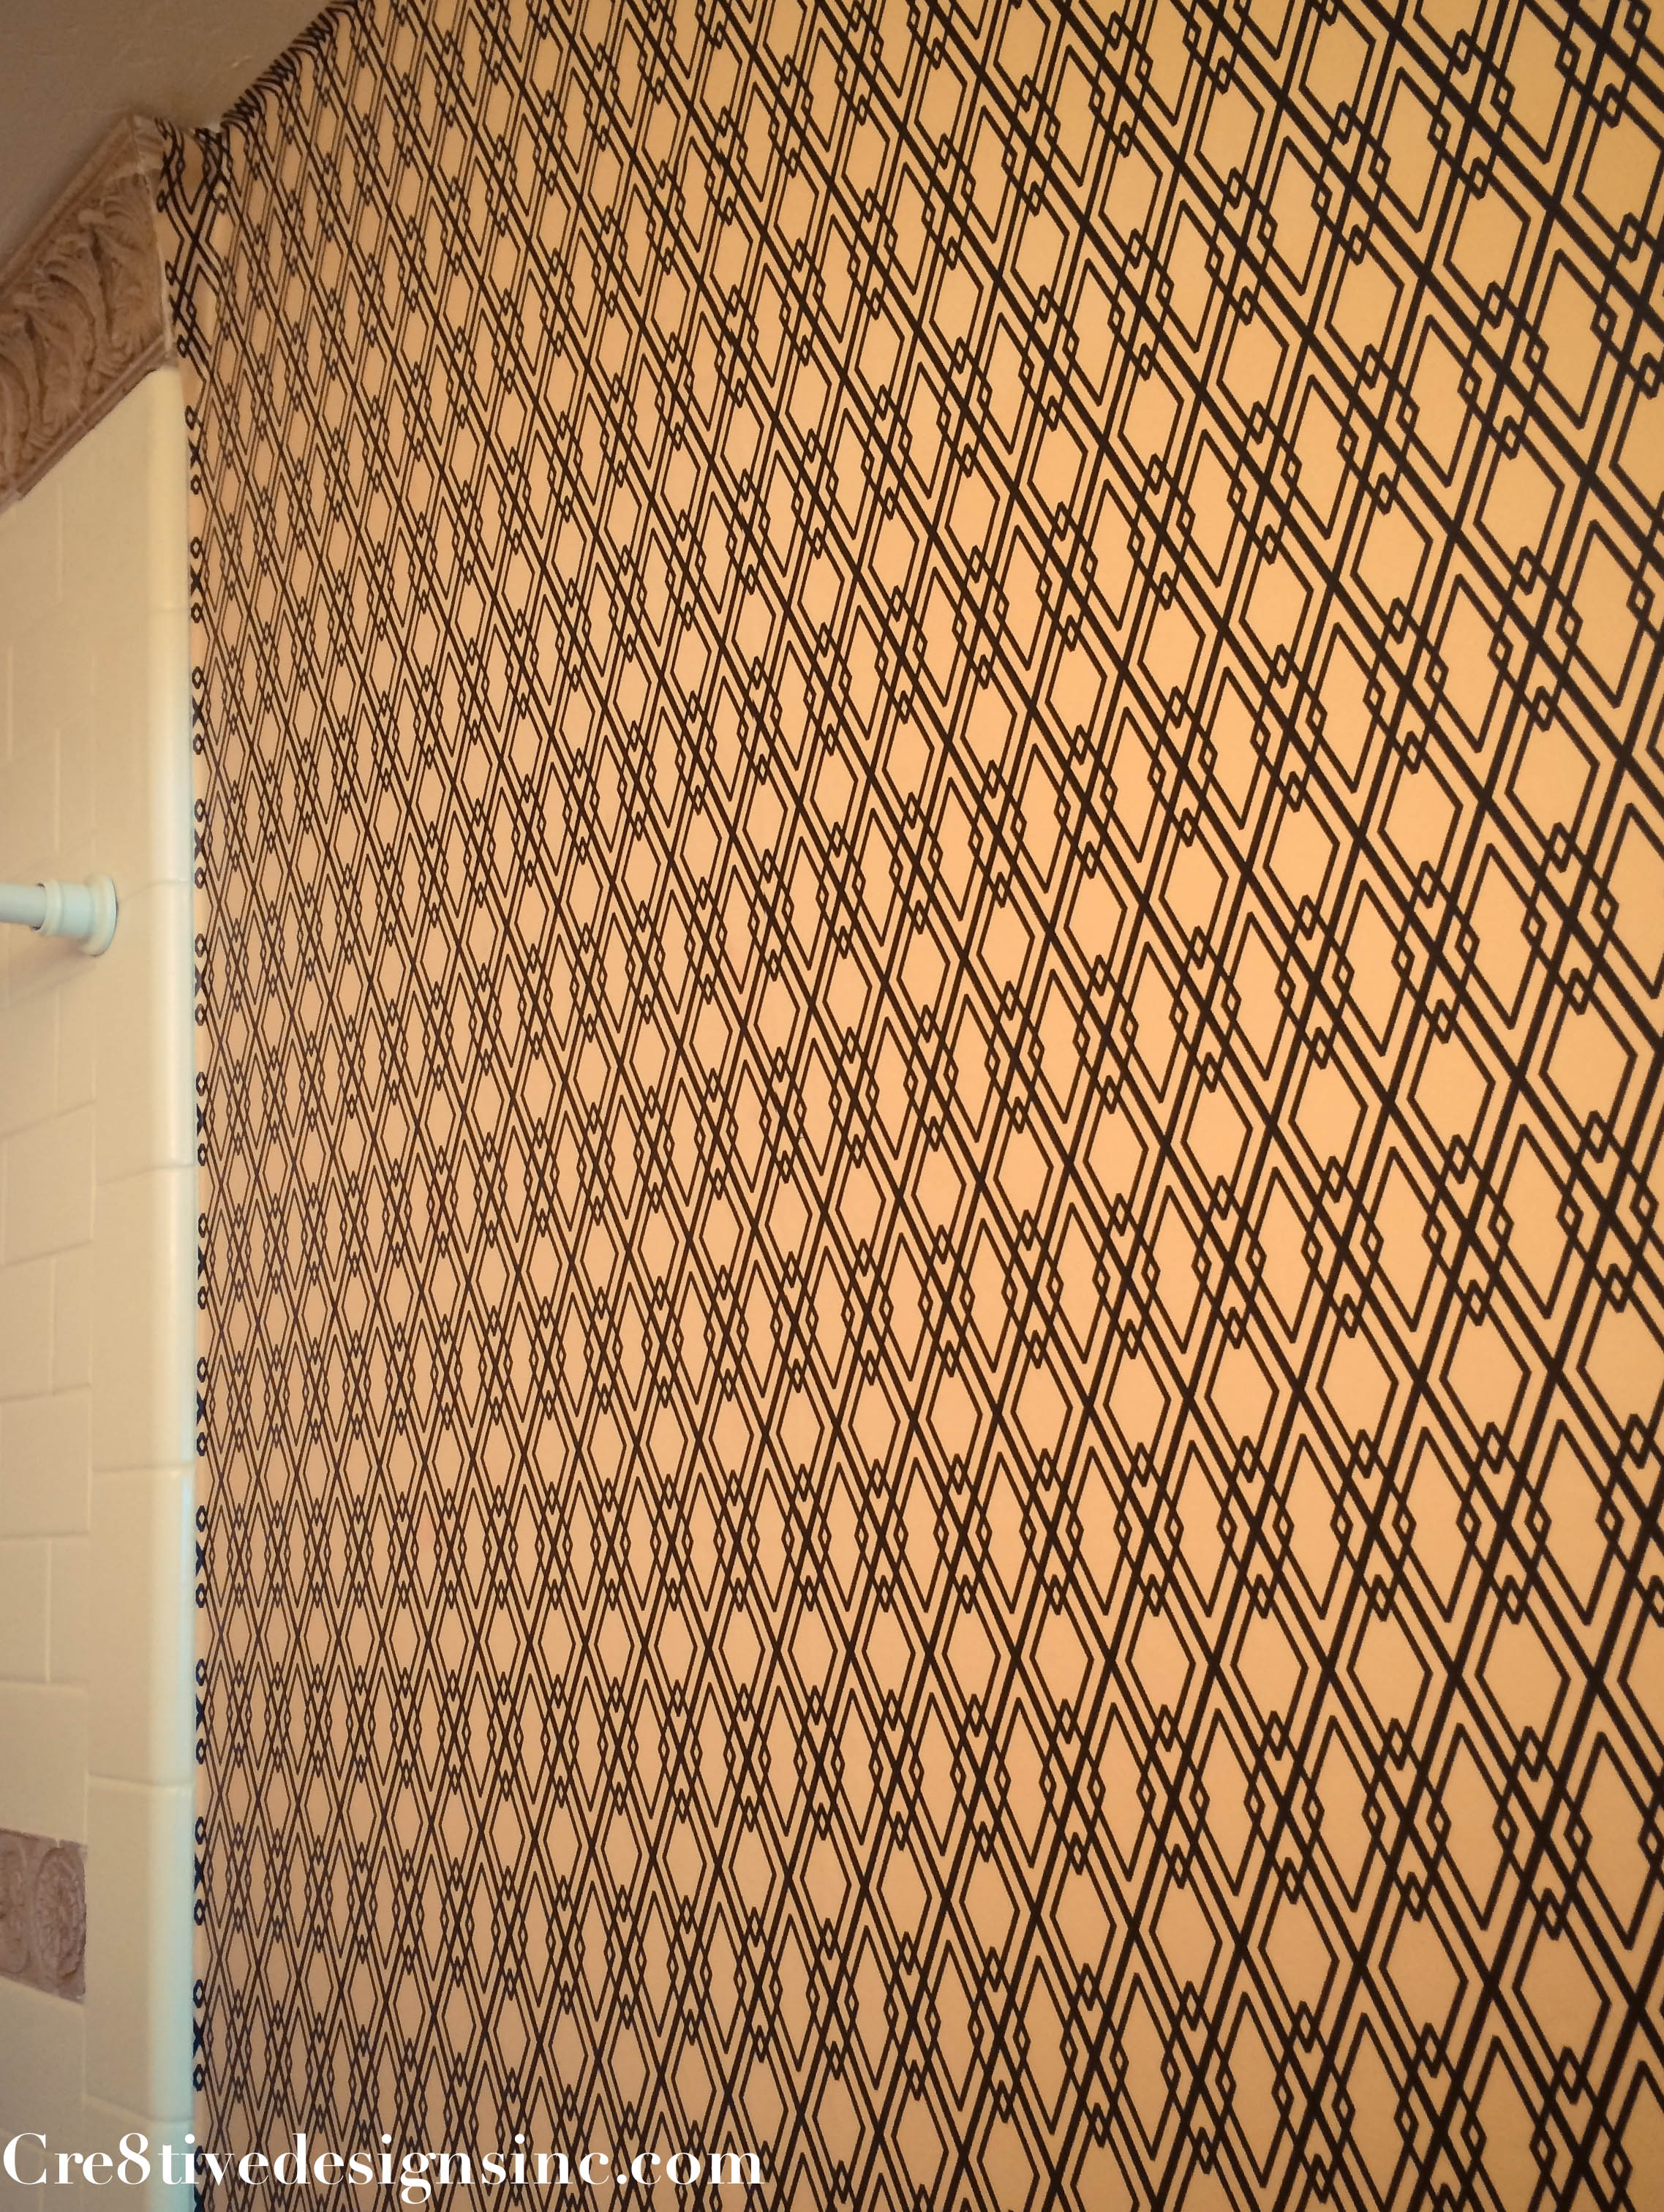 Contact Paper For Walls using contact paper to wallpaper a wall - cre8tive designs inc.